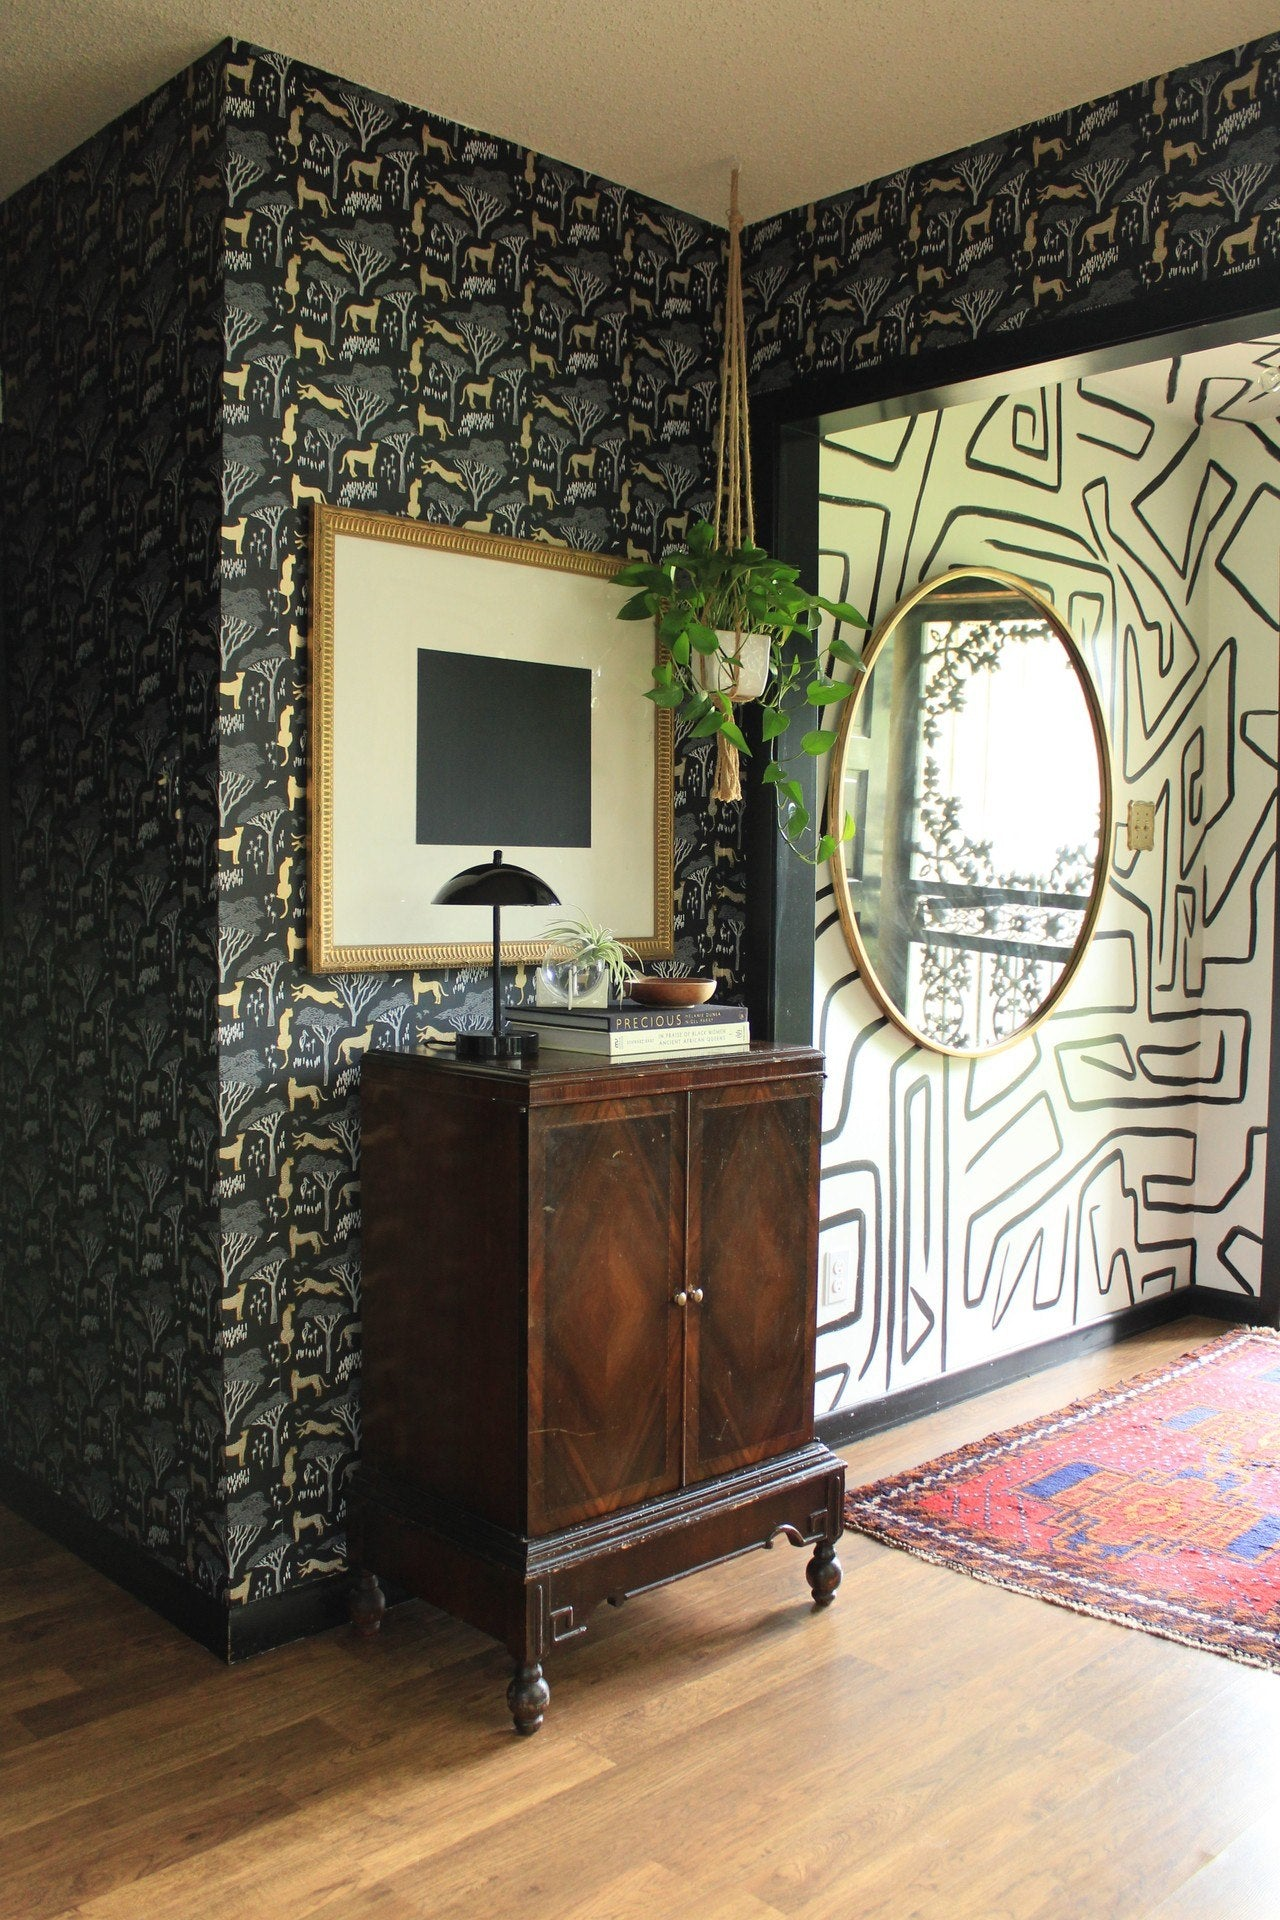 Carmeon Hamilton | Nubi Interiors | Serengeti Ebony wallpaper | Julia Rothman | Hygge & West